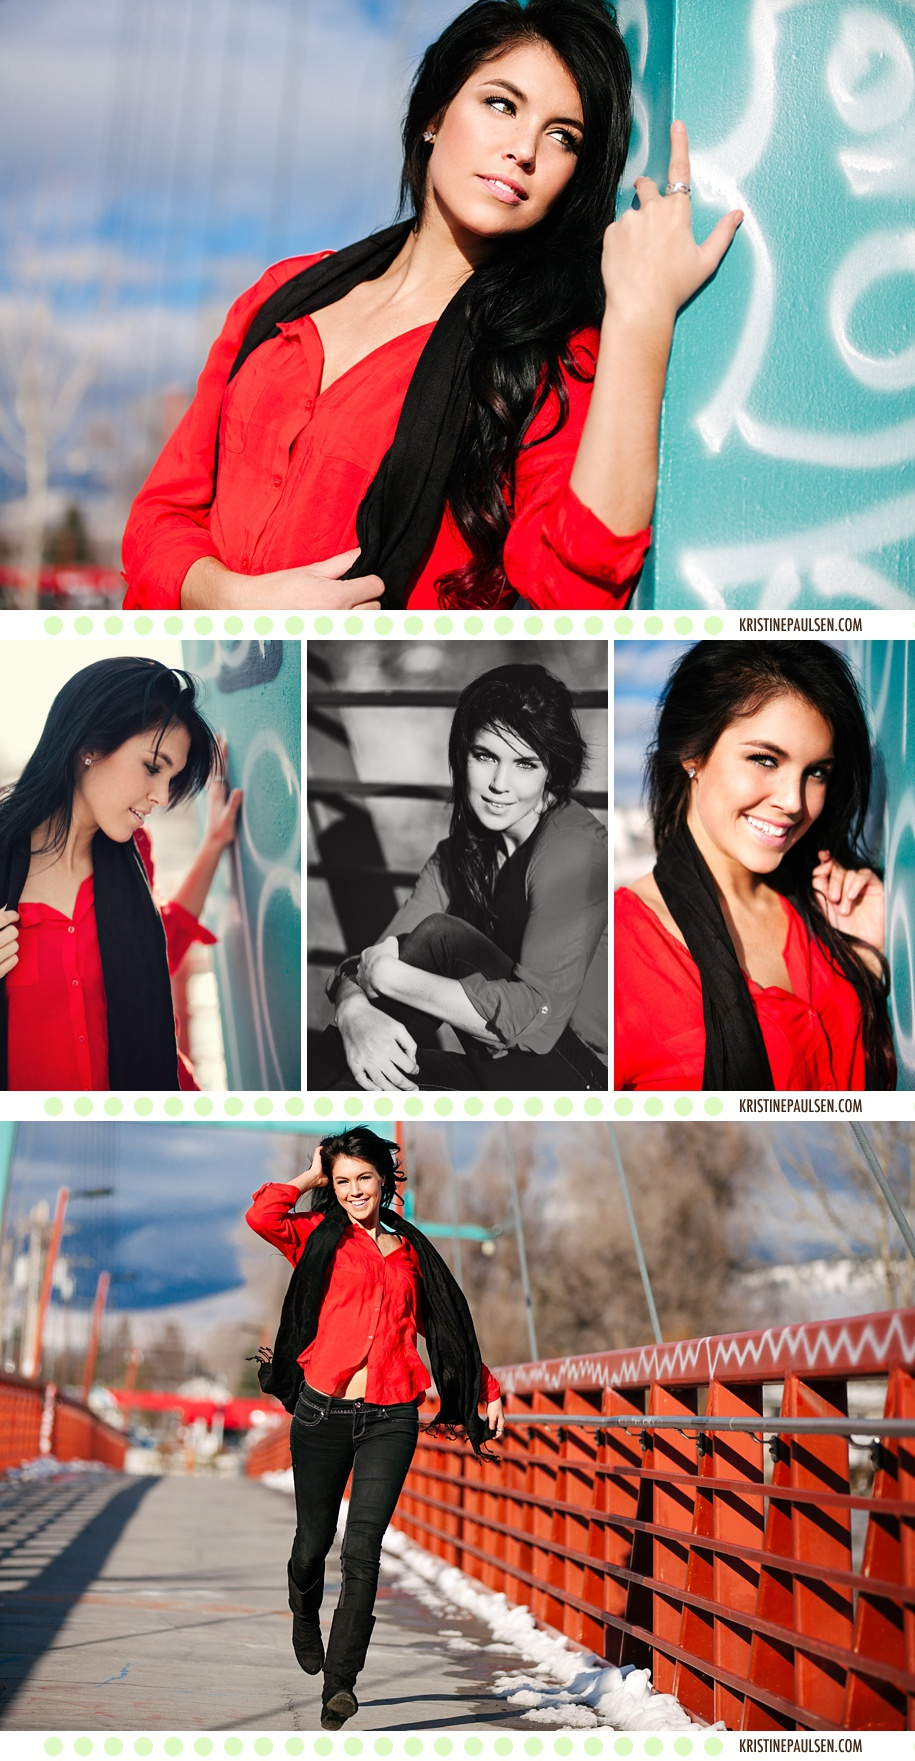 Jessicas-Missoula-Montana-Fashion-Senior-Photography-Session-by-Kristine-Paulsen-Photography